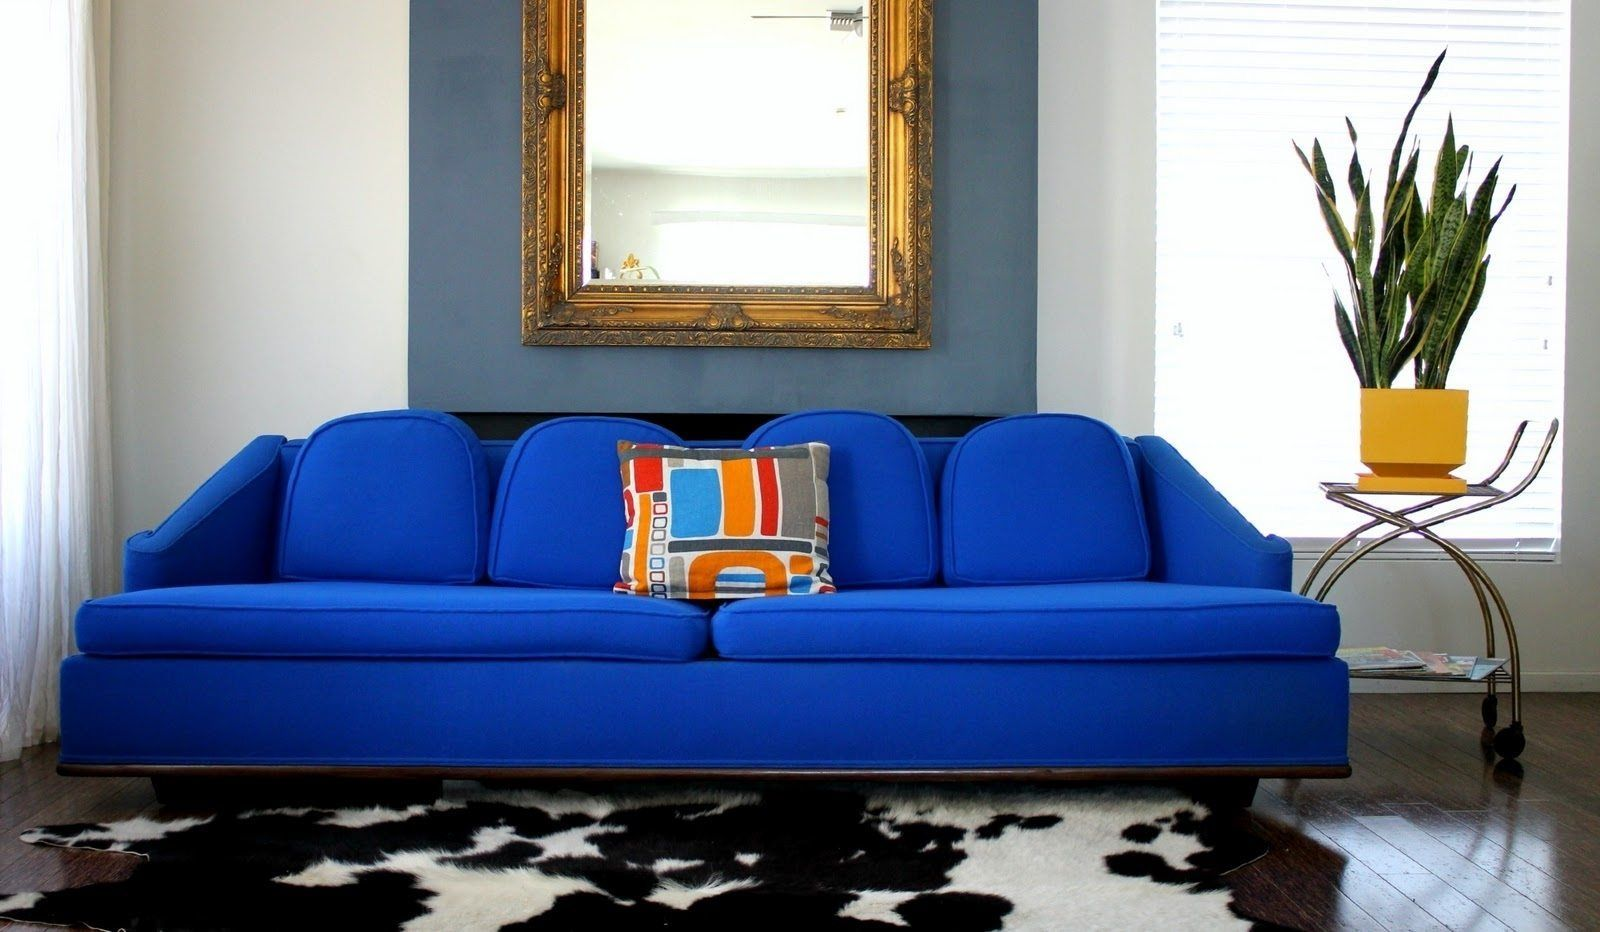 Best Bright Blue Couch Blue Sofa Bright Blue Couch Blue 400 x 300